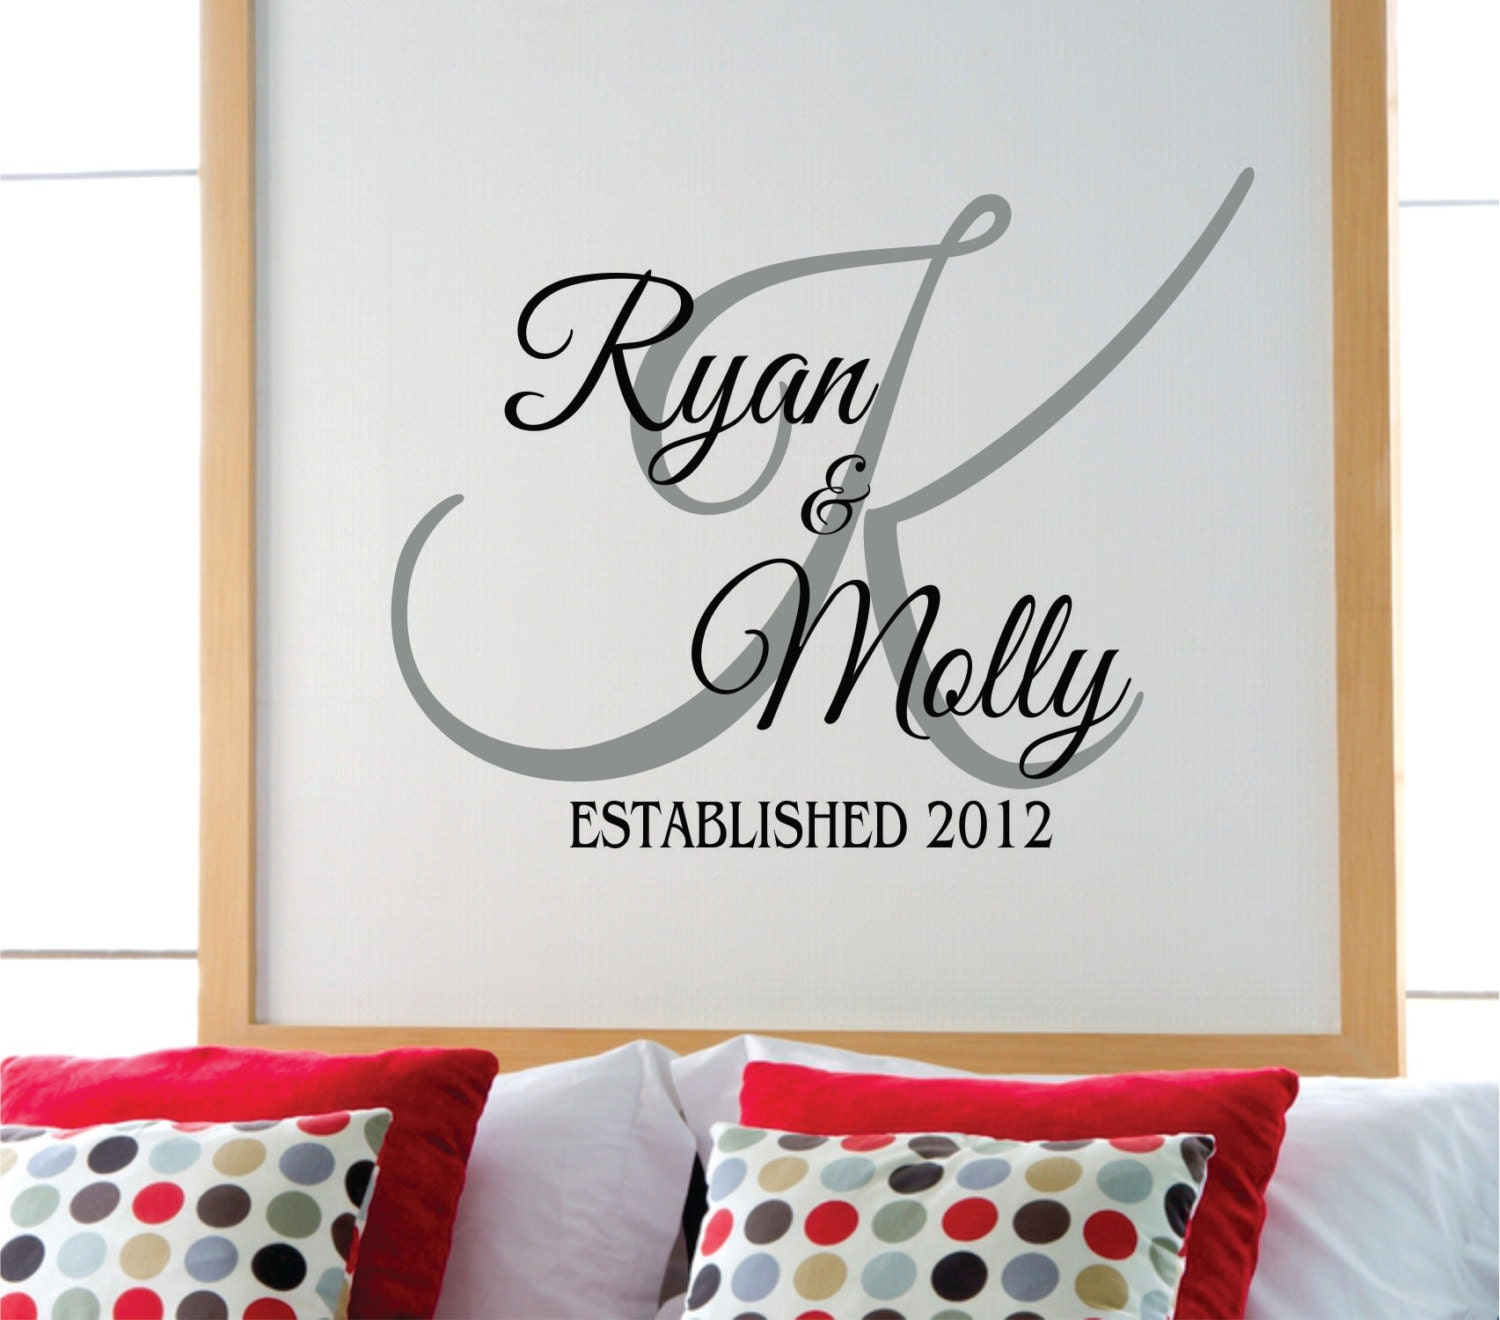 Personalized Bedroom Wall Decor : Personalized family name wall decal